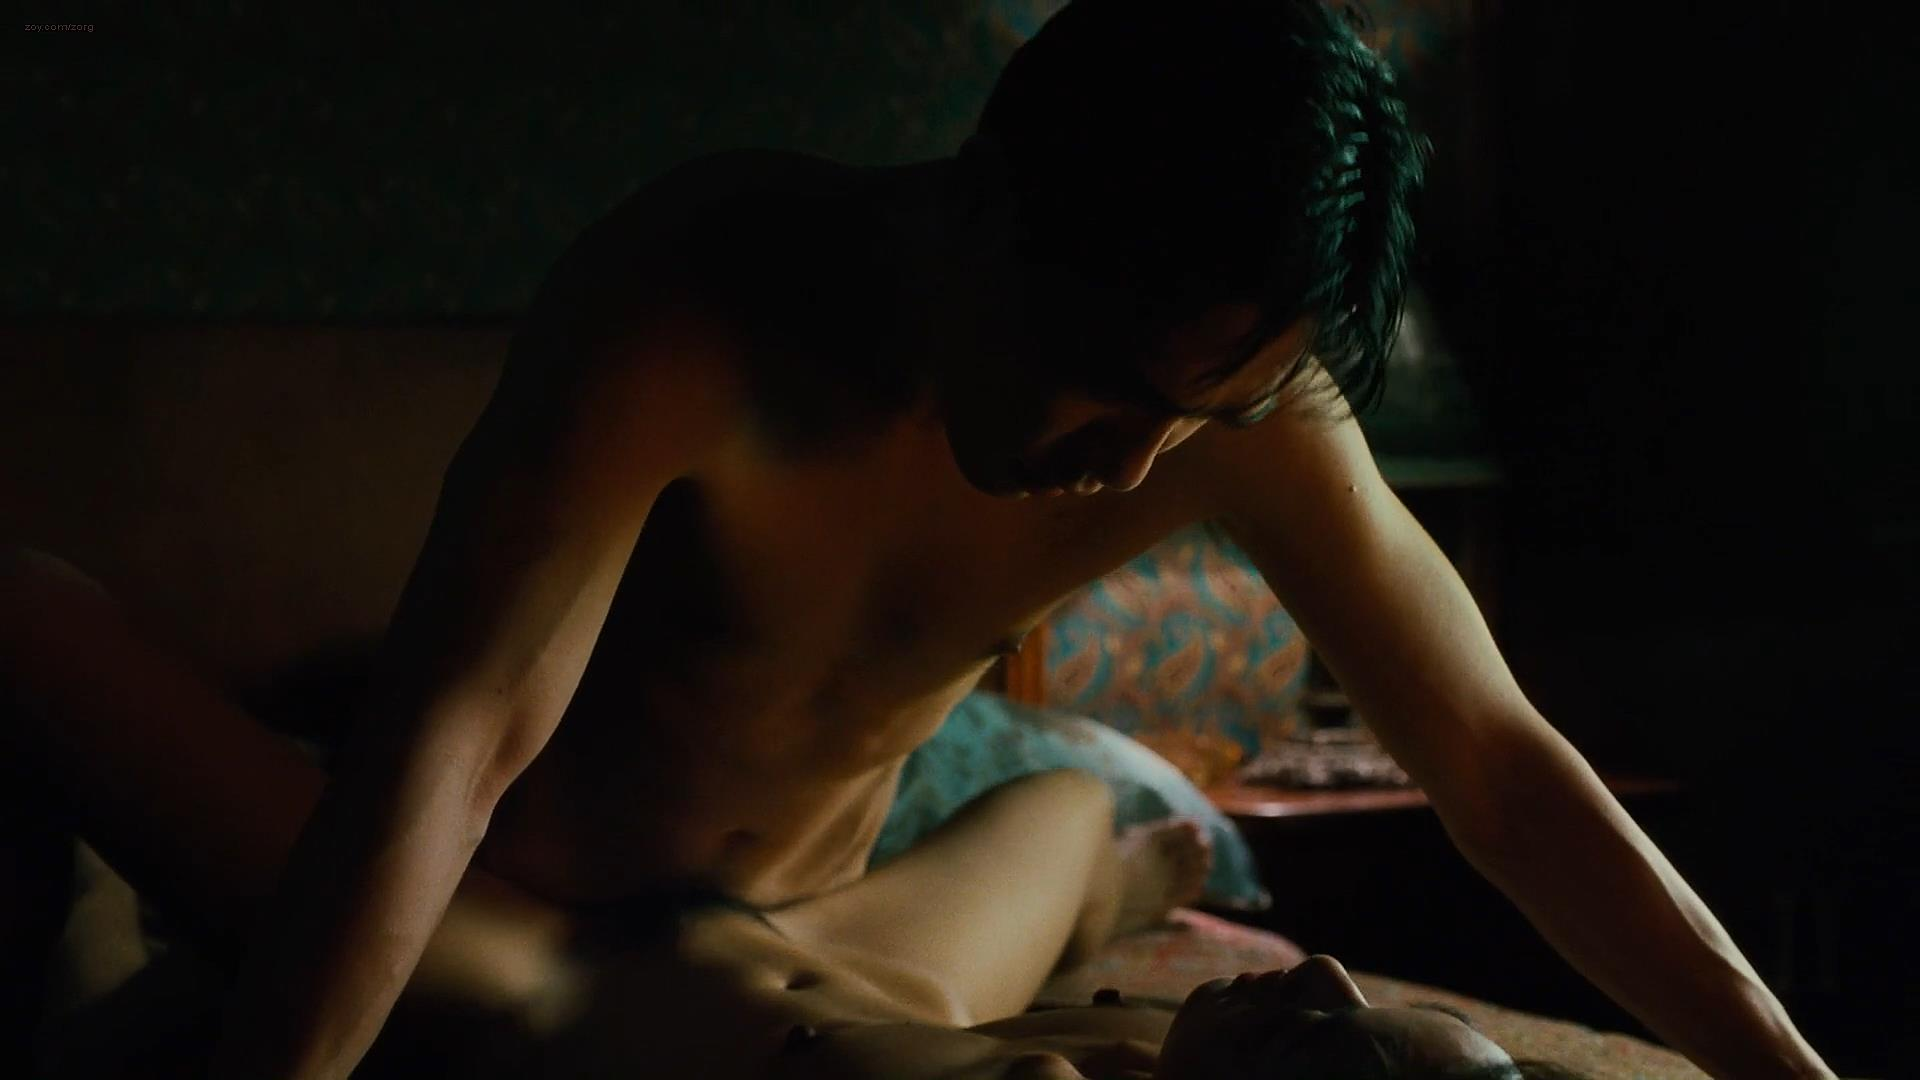 Wei Tang nude sex near explicit - Lust Caution (2007) hd1080p (2)